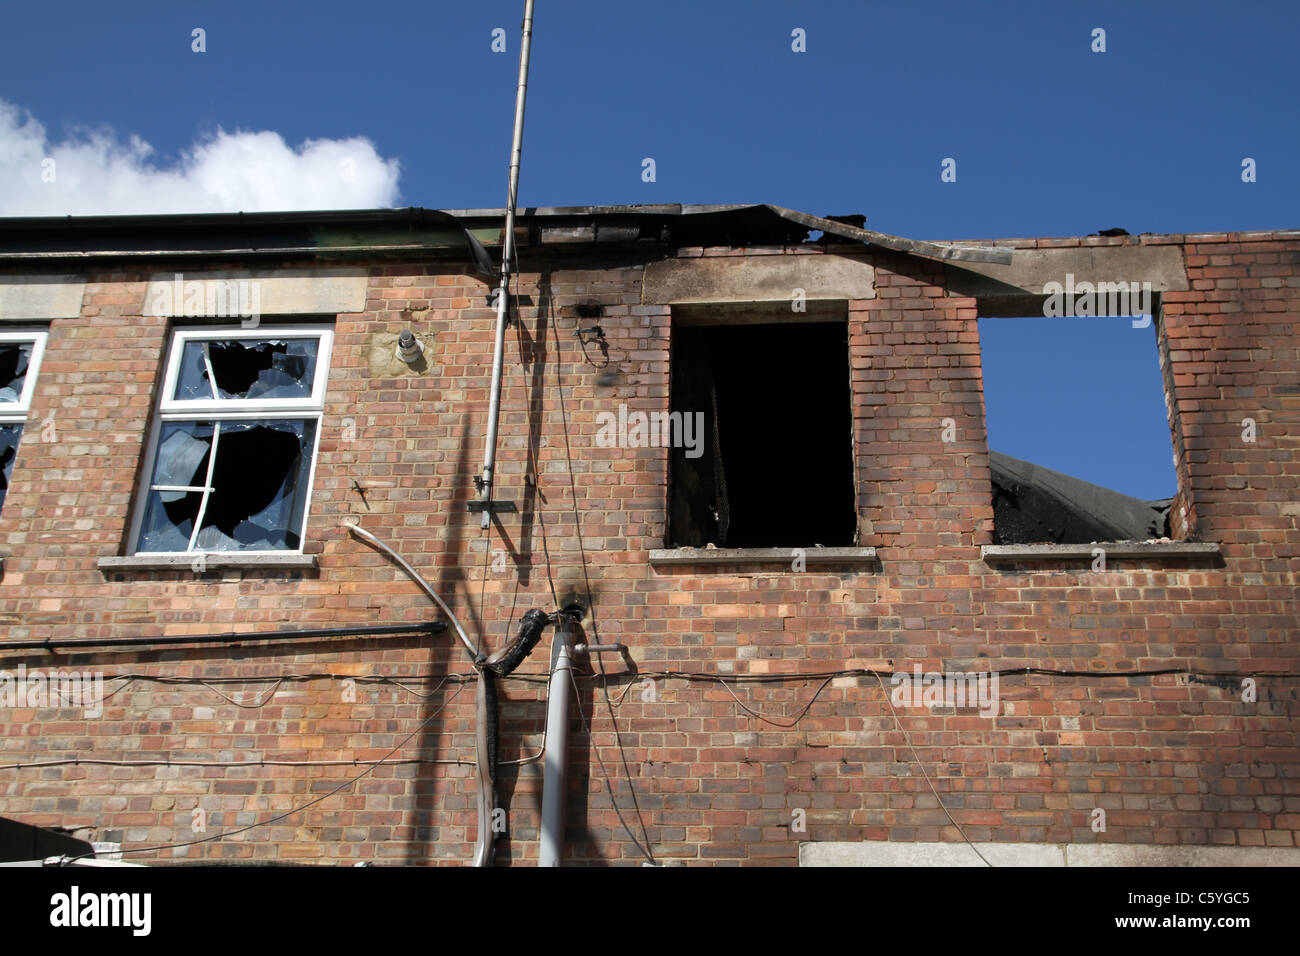 Damage caused by riot and looting in Tottenham, London, UK. August 2011 - Stock Image